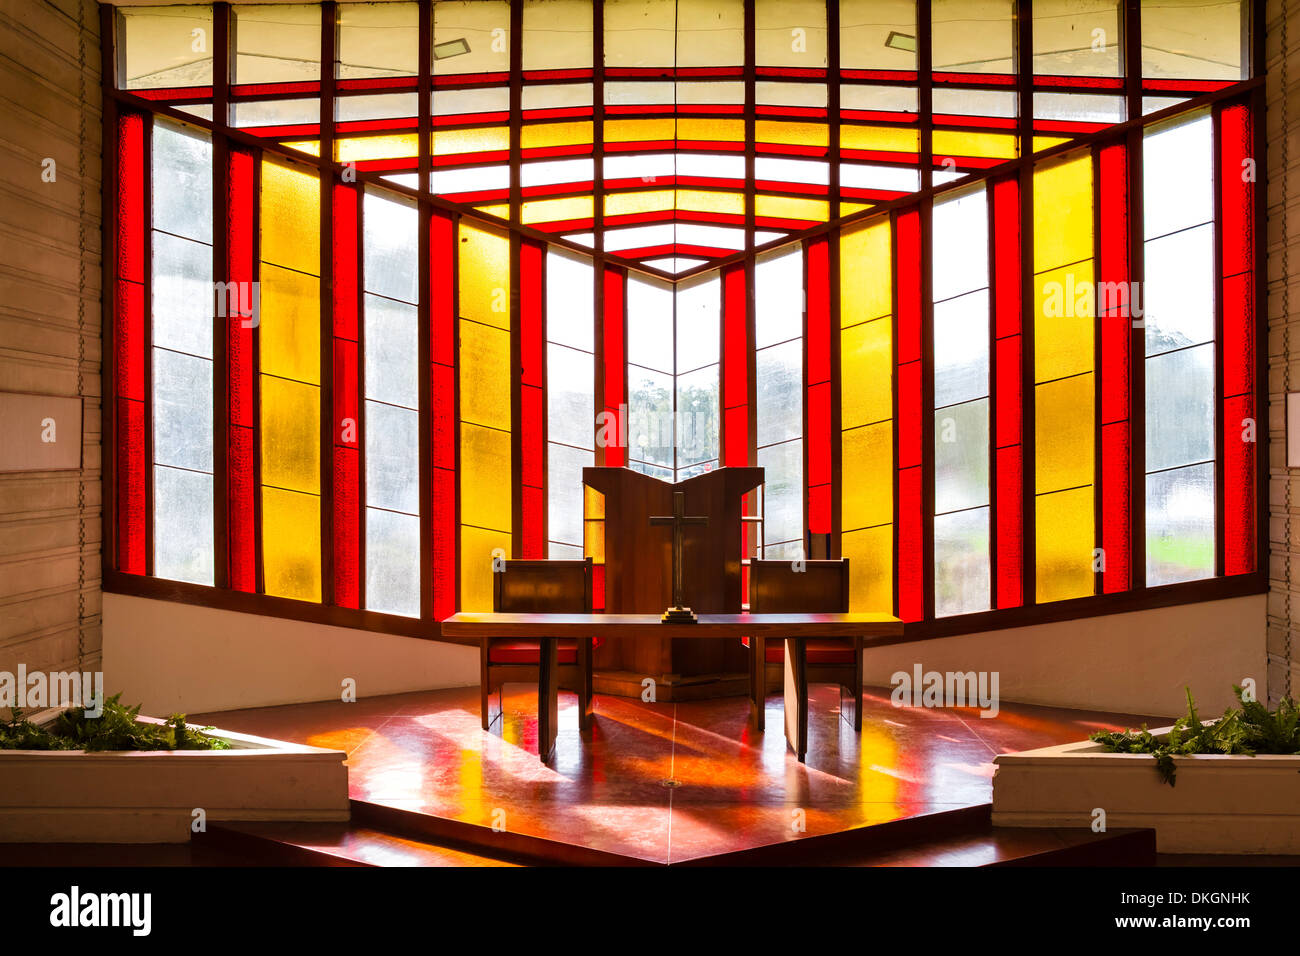 Stained glass windows, William H Danforth Chapel, Frank Lloyd Wright Campus at Florida Southern College, Lakeland, Florida, USA - Stock Image